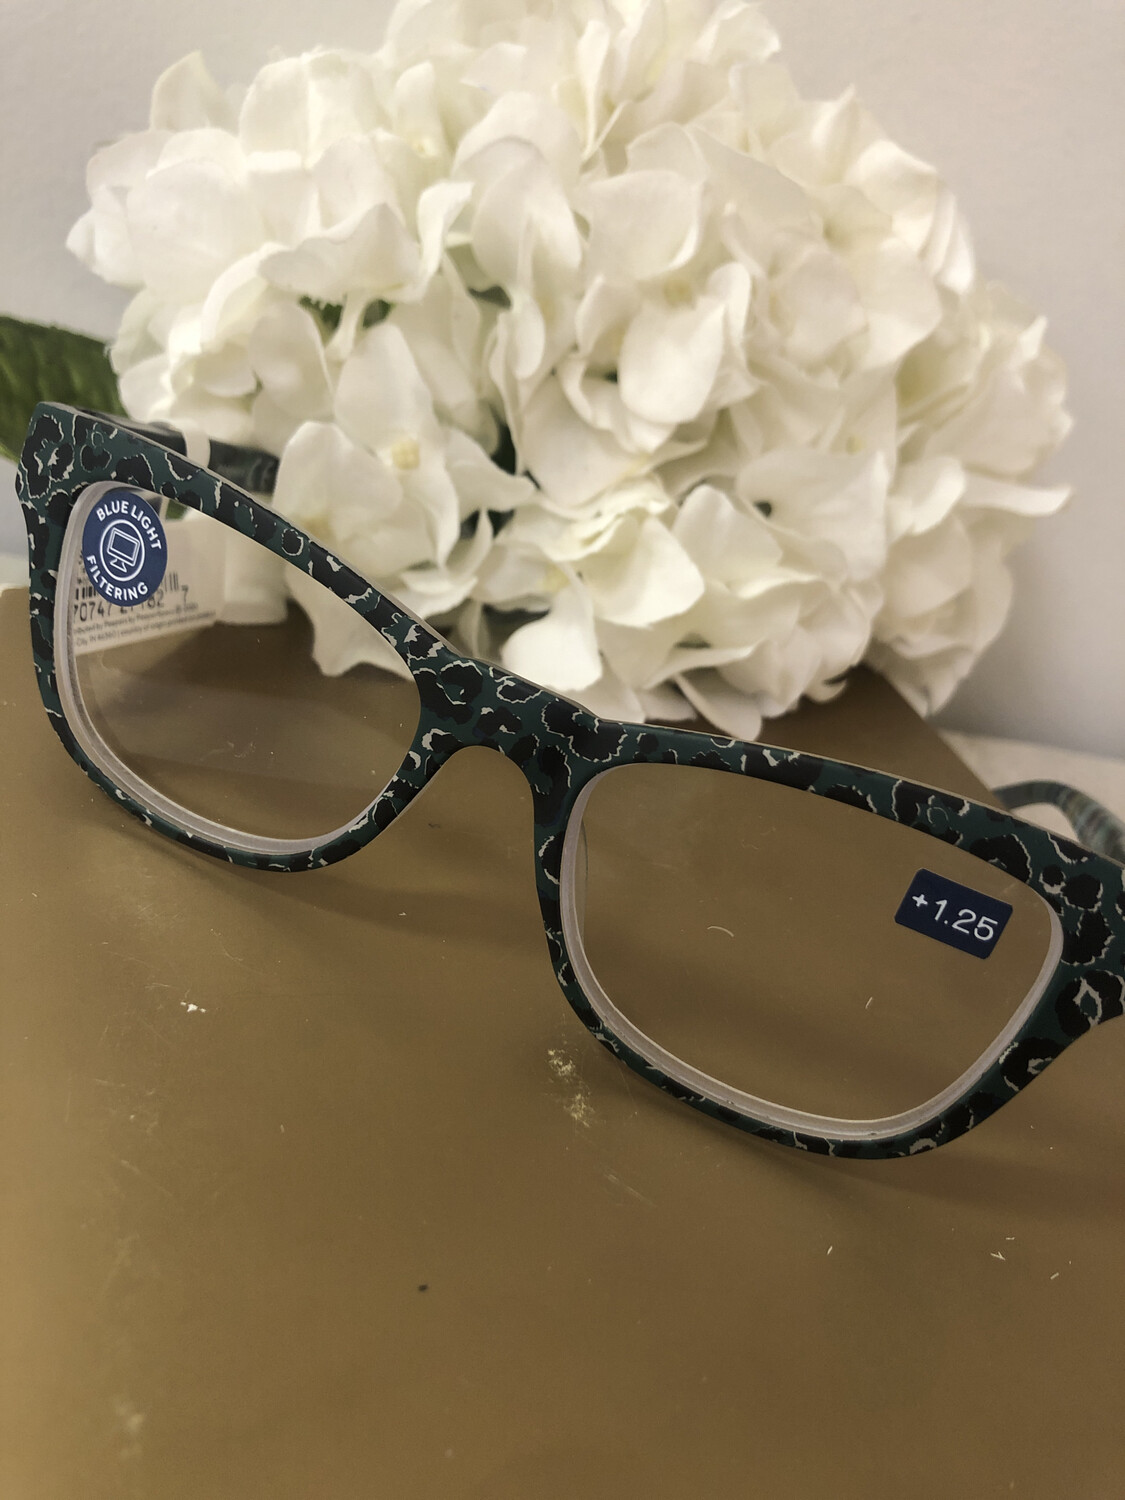 Peepers Orchid Island Focus Green Leopard Floral +1.25